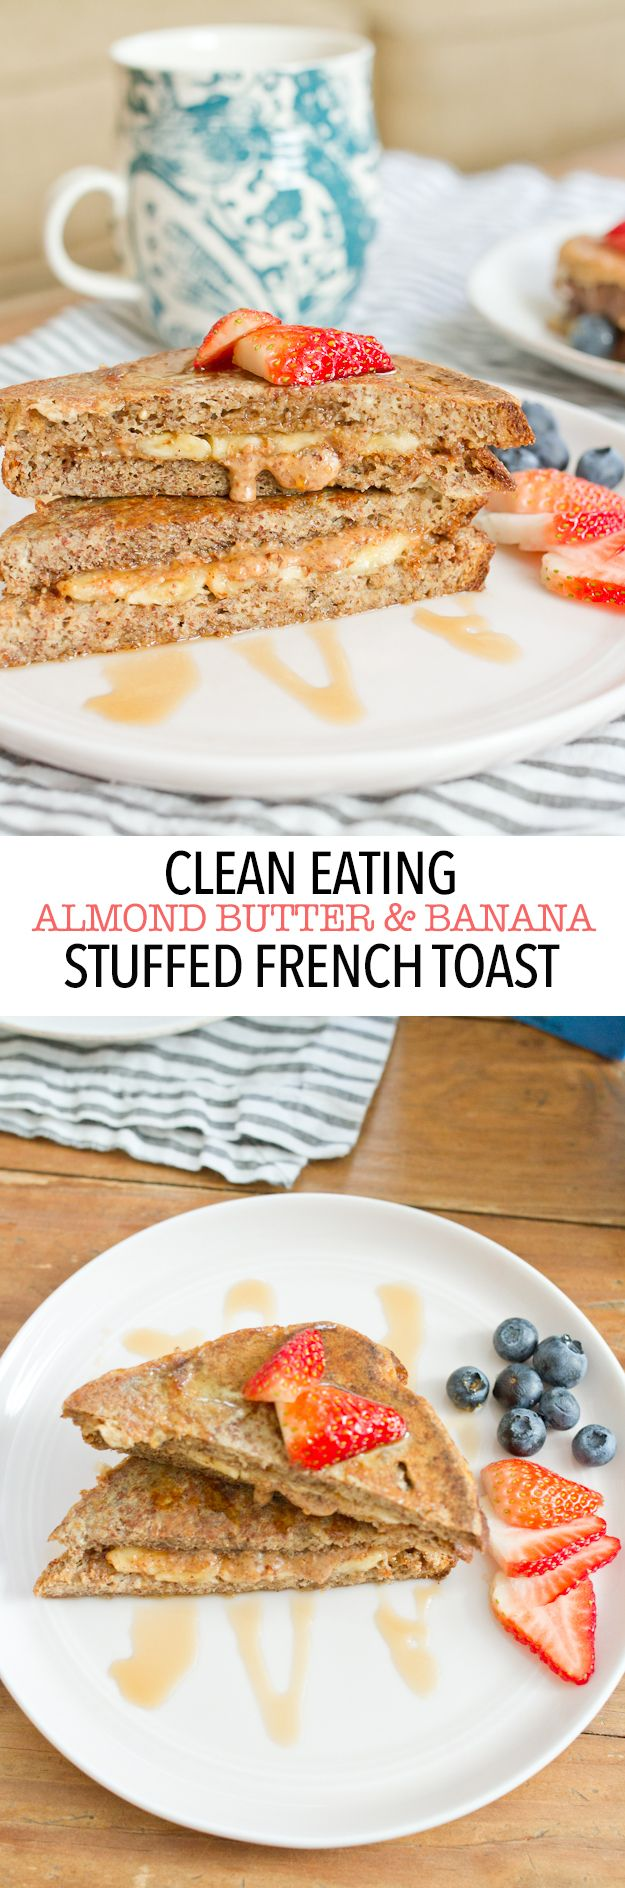 Clean Eating Almond Butter & Banana Stuffed French Toast // Loaded with healthy fats, protein and low in sugar!